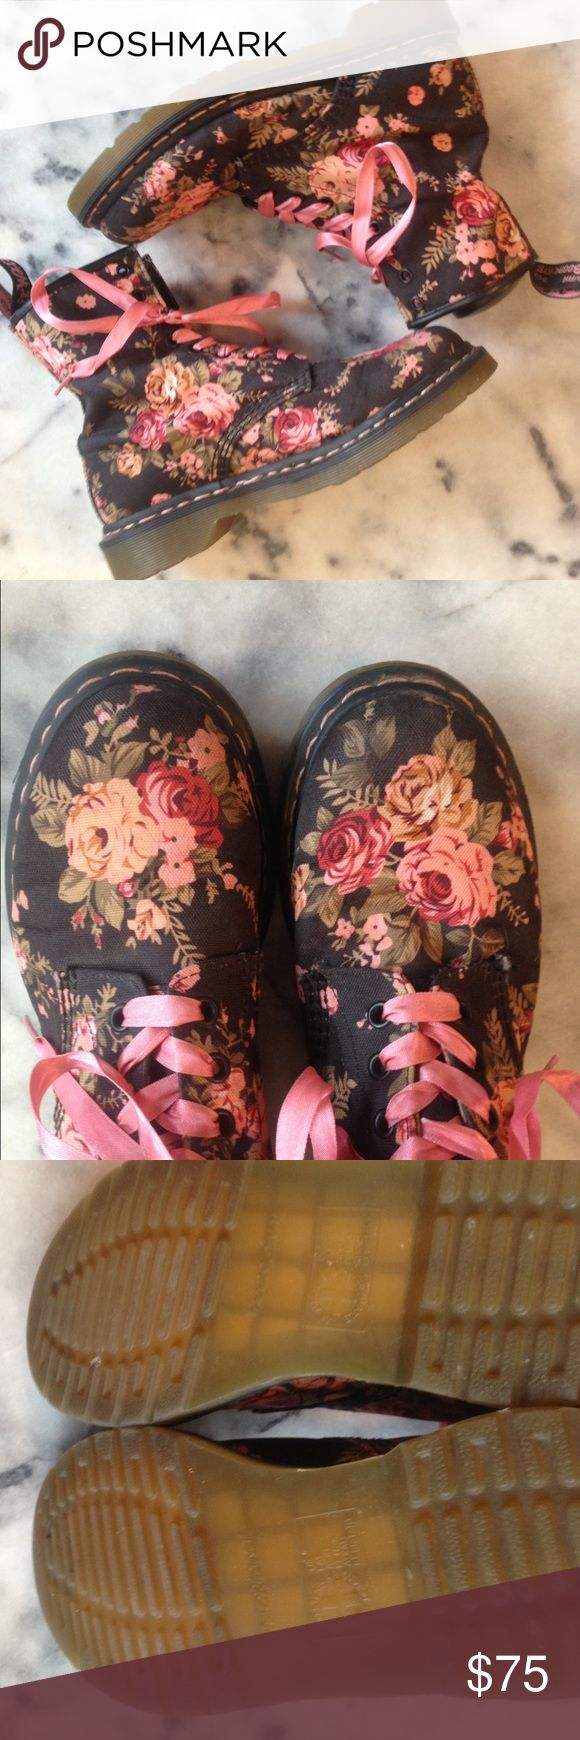 Doc Martens Floral Canvas Docs One pair of Floral Doc Martens, Size 'womens' US8 EU39 UK6, worn once. Pink ribbon laces included, but removable. Doc Martens Shoes